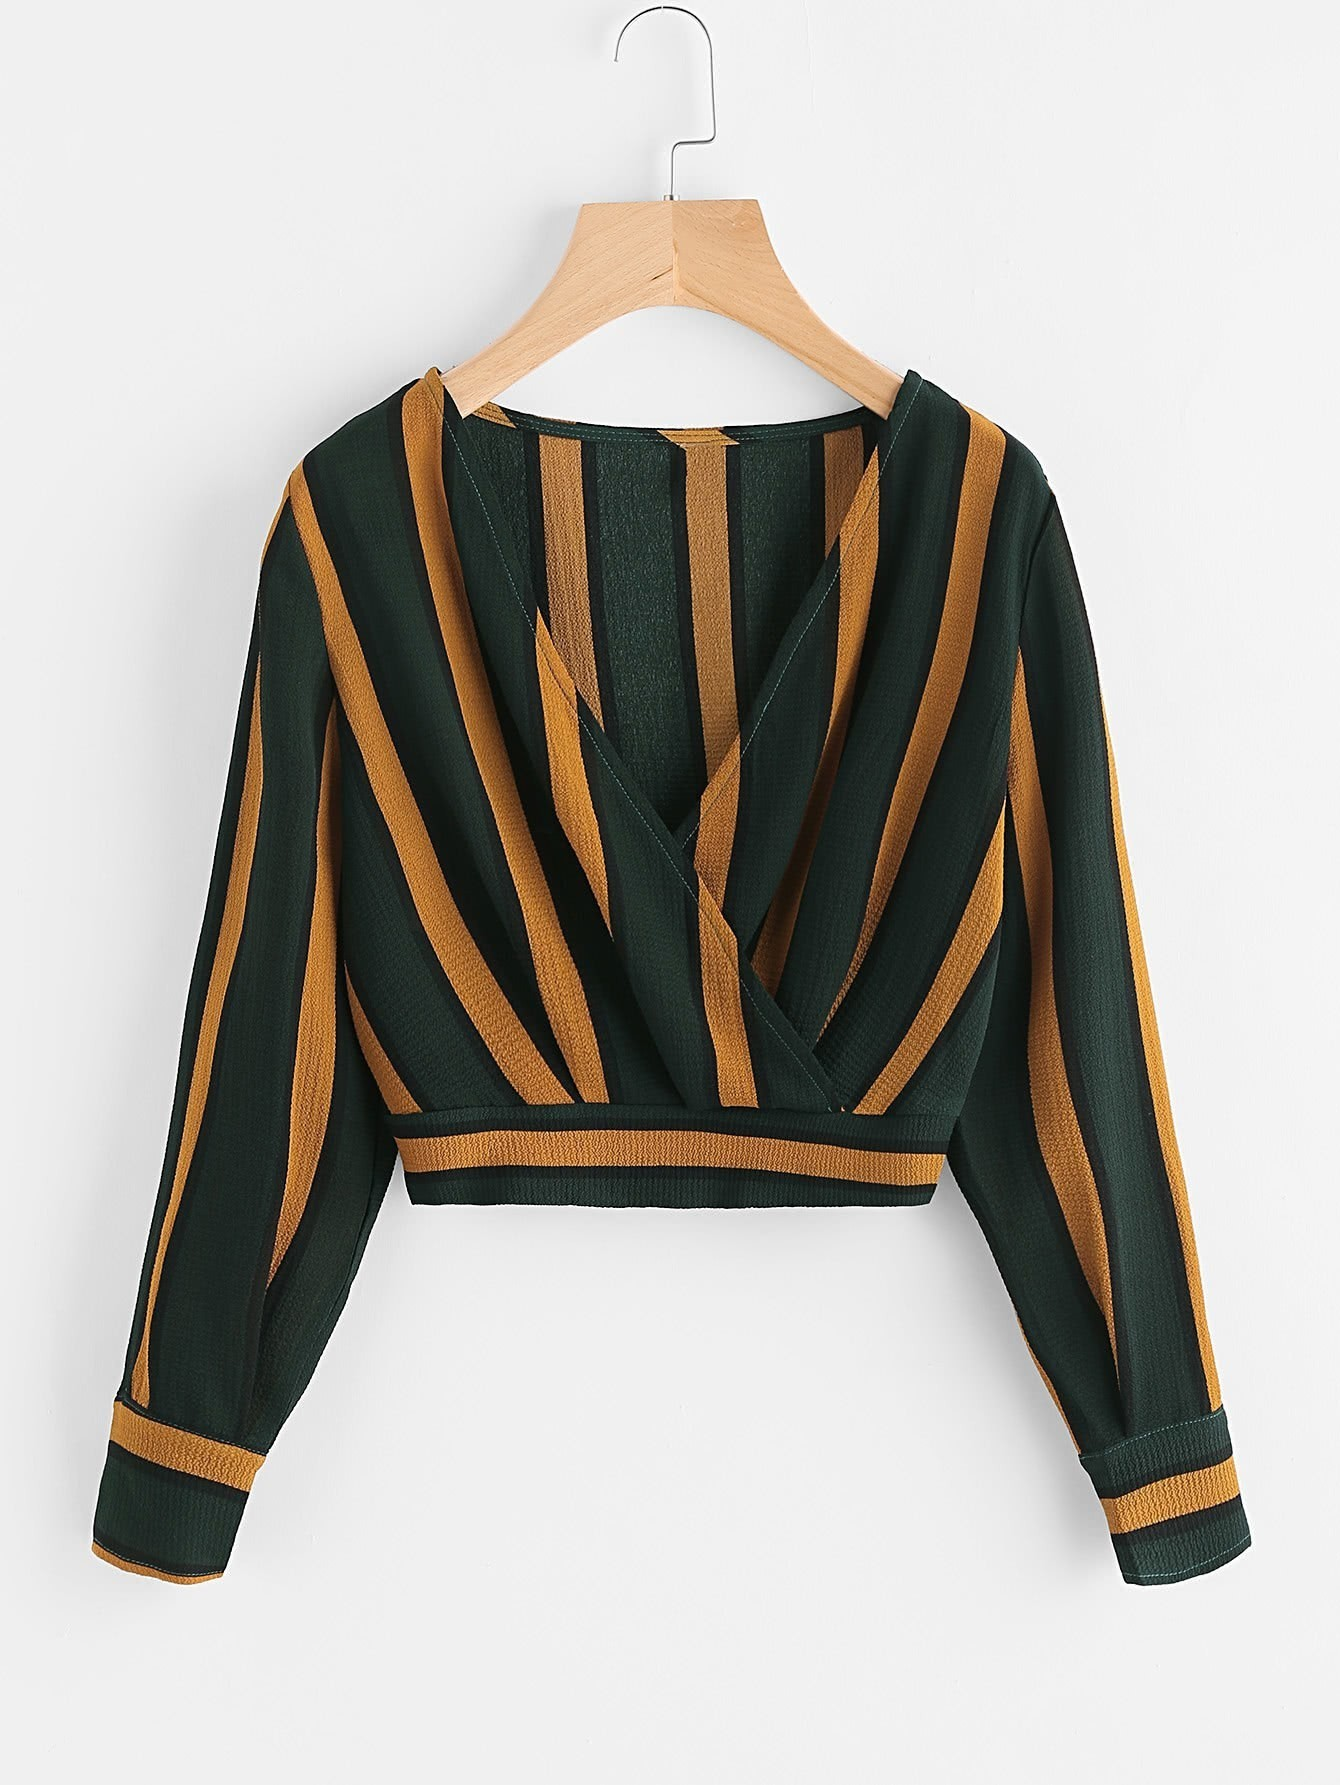 V Neckline Striped Surplice Crop Top бензиновый триммер ставр ставр тб 800лр